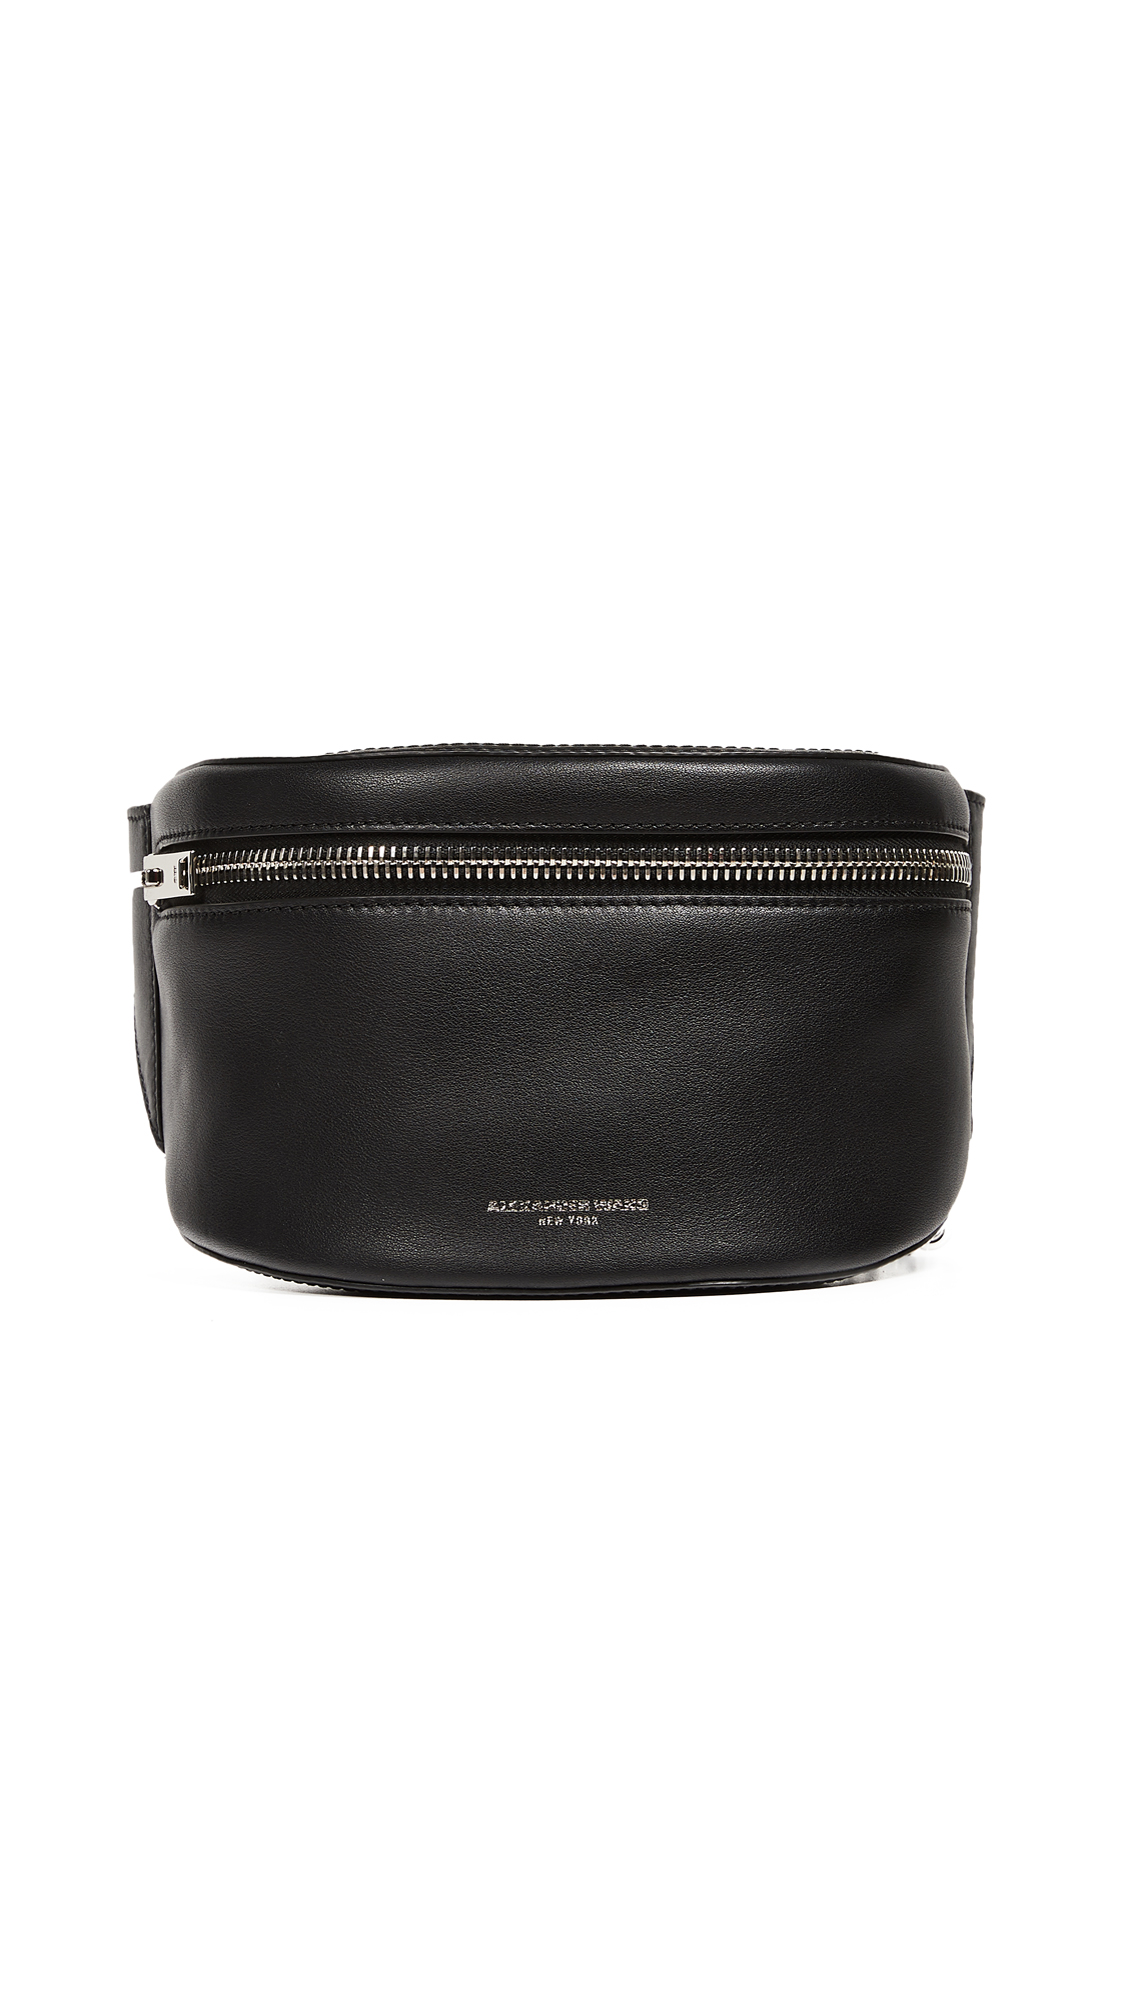 ACE FANNY PACK